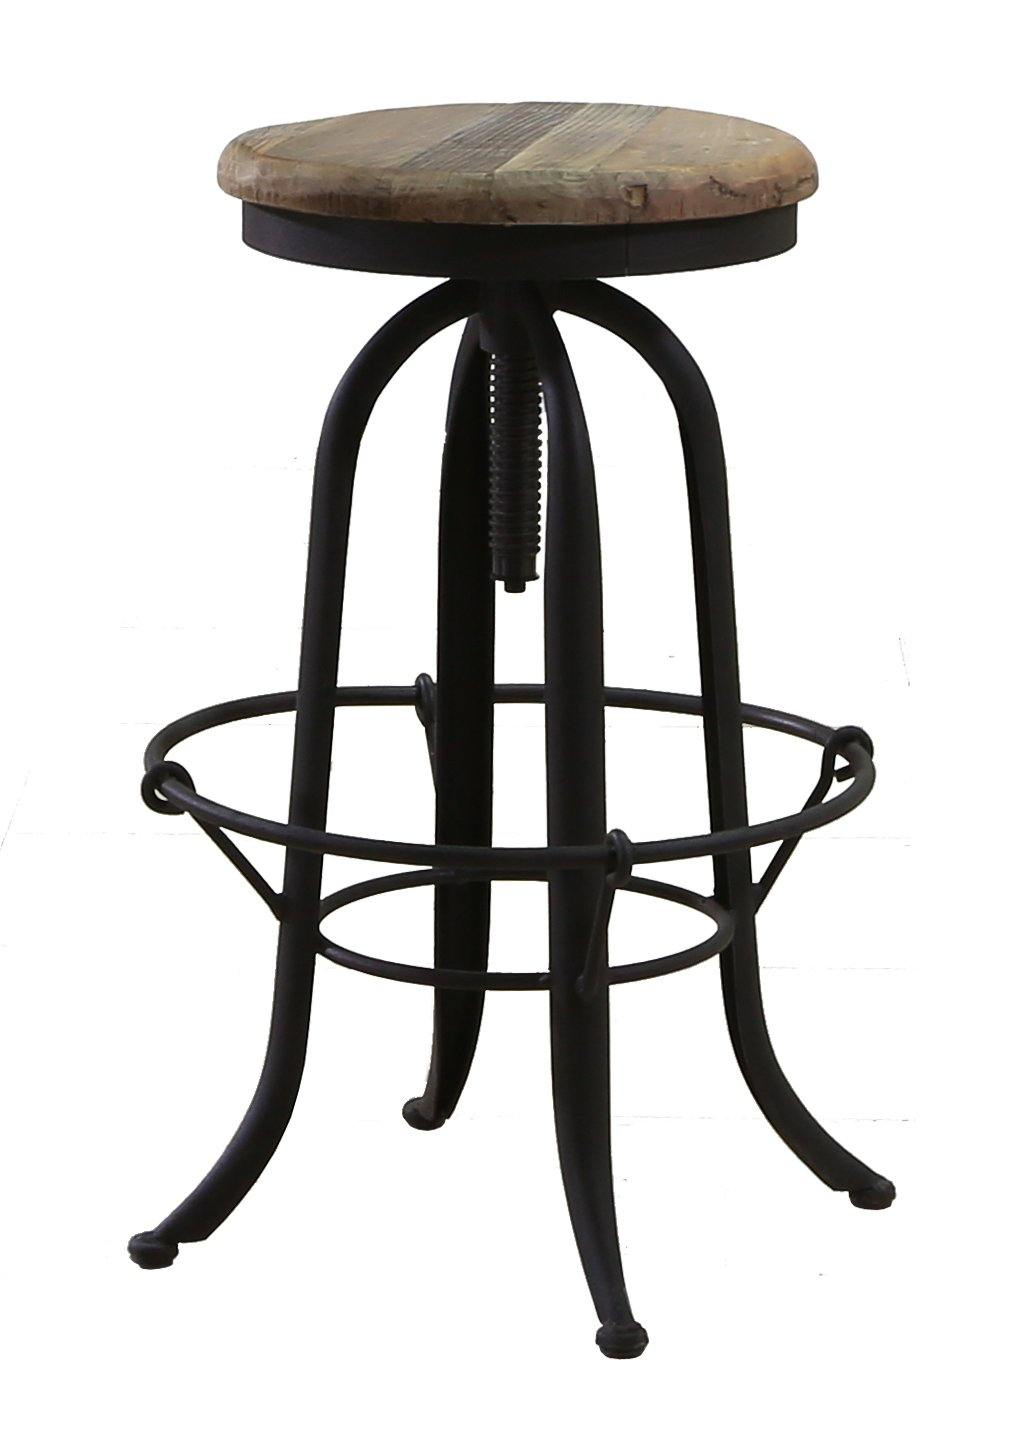 Industrial Bar Stool - Evopia